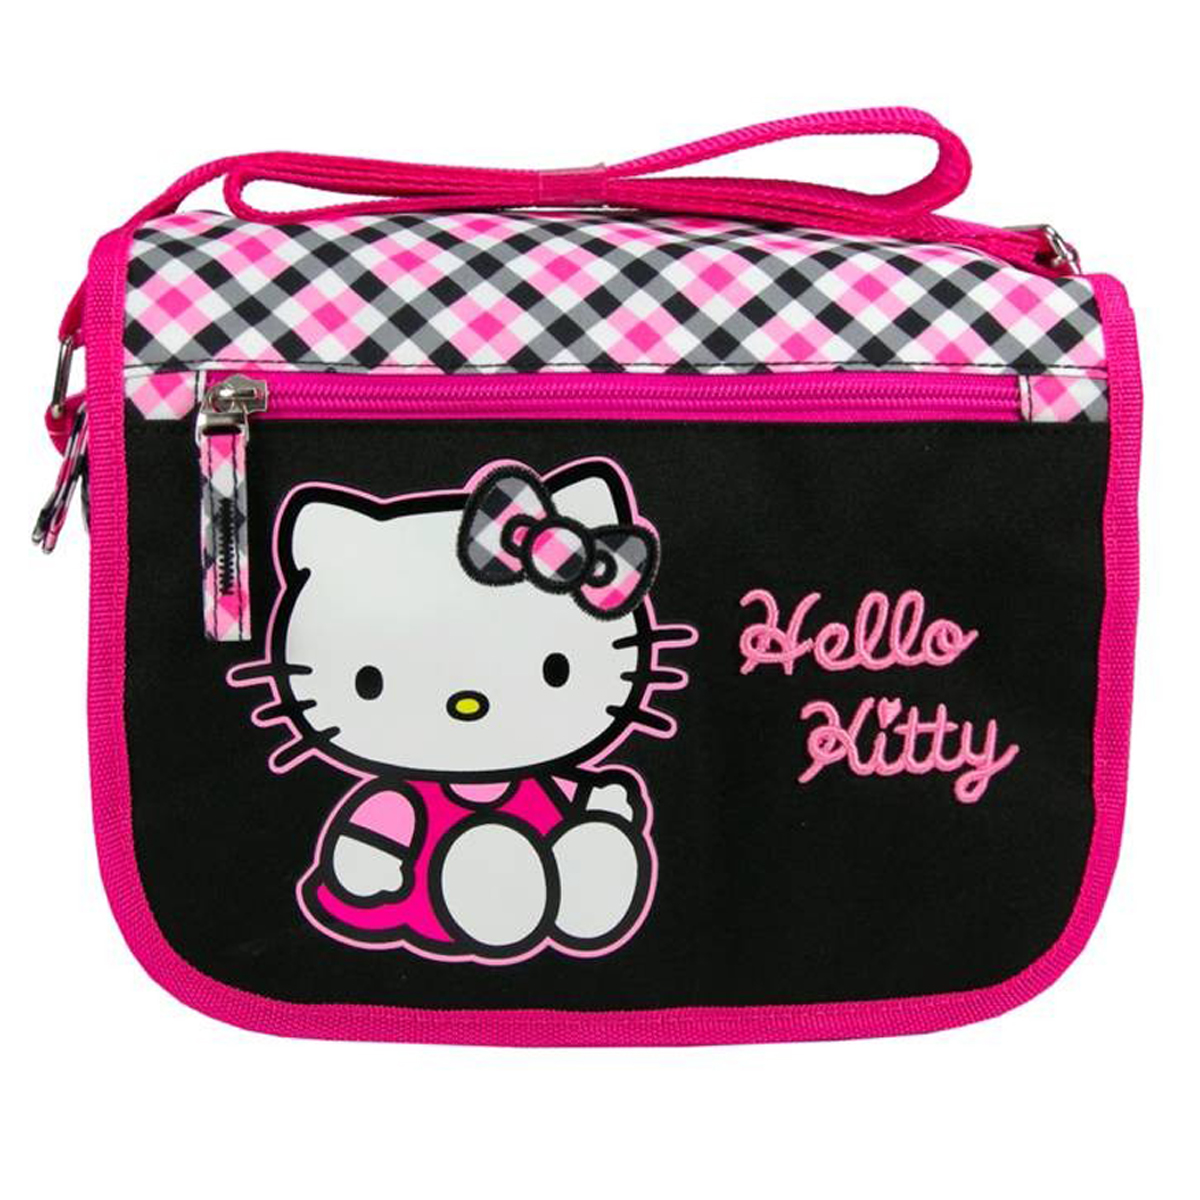 Sac \'Hello Kitty\' noir rose - 24x20x8 cm - [J6495]